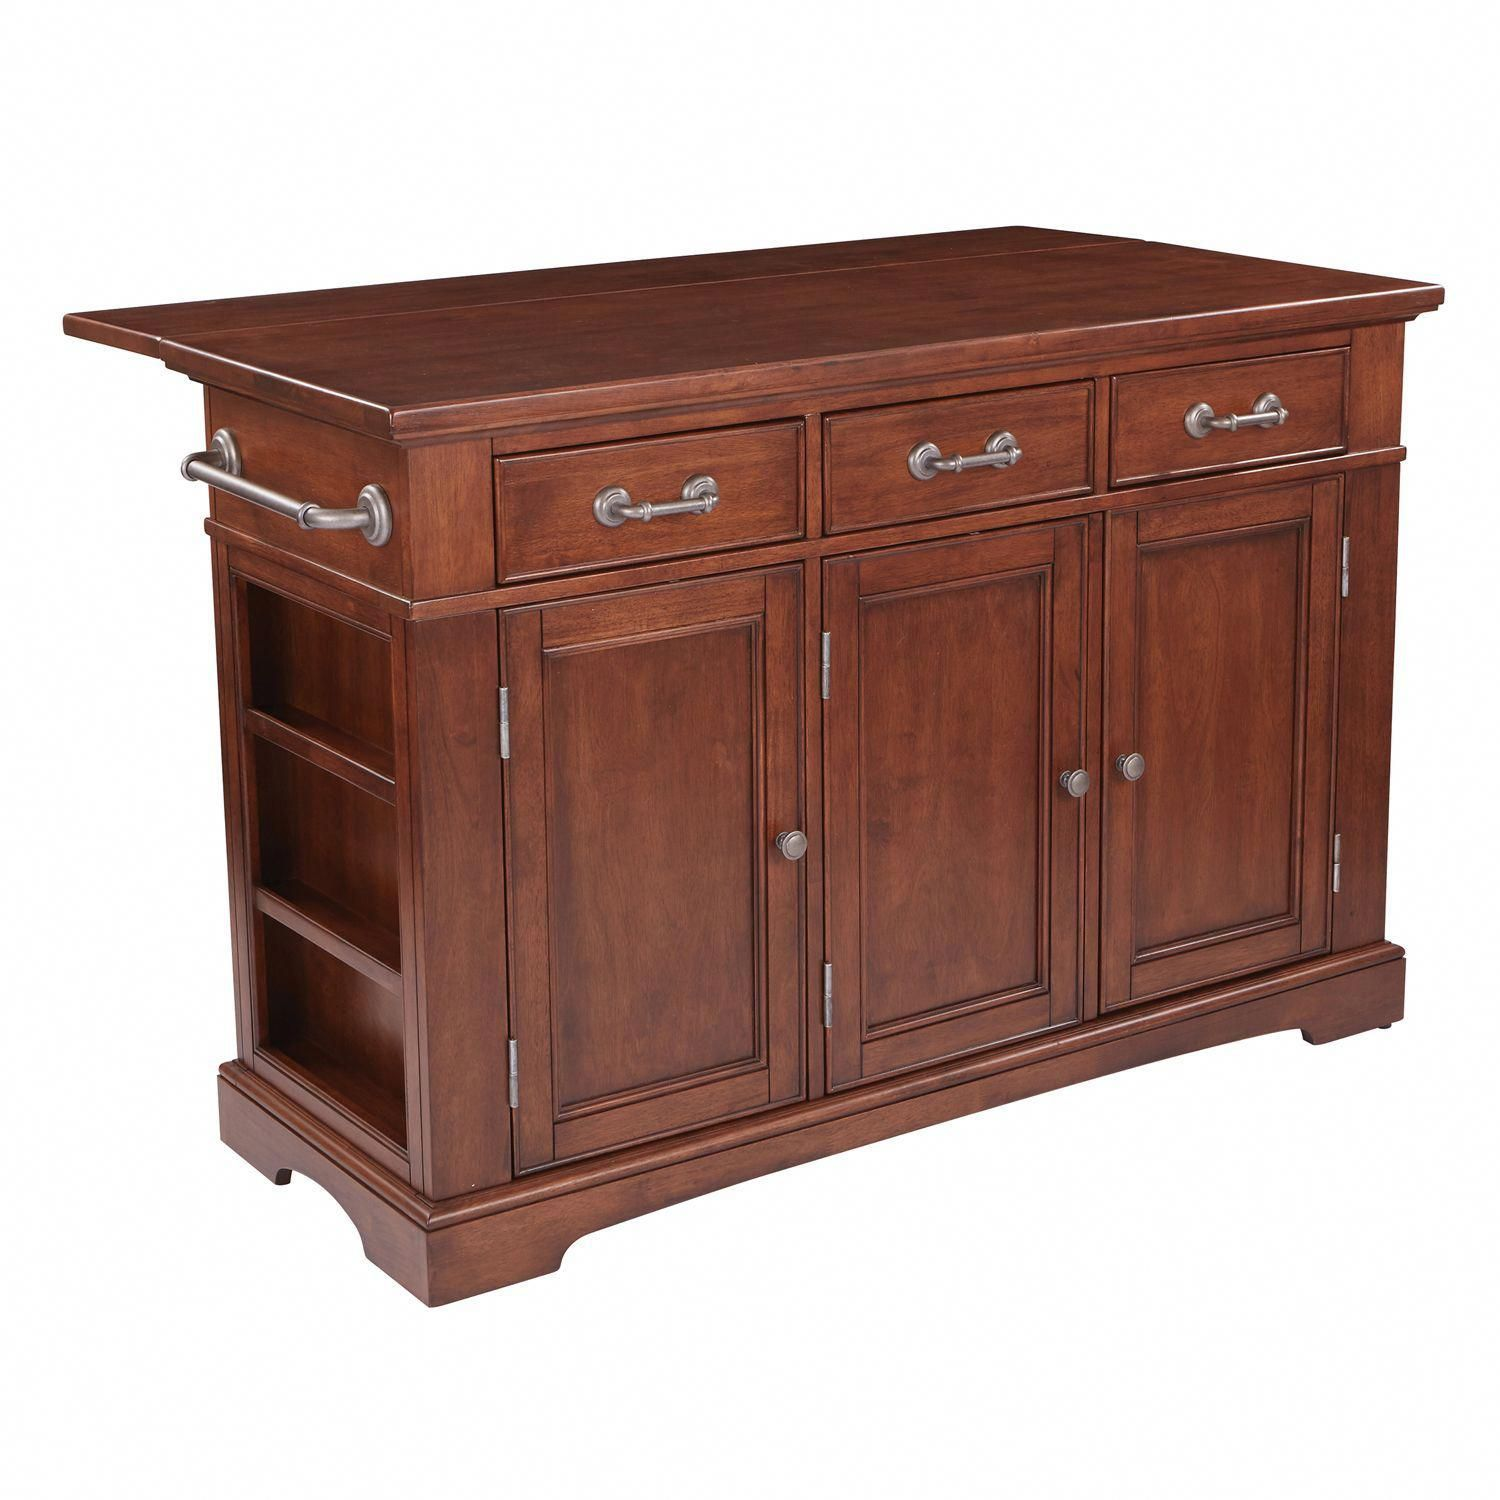 Large country kitchen island in vintage oak finish in